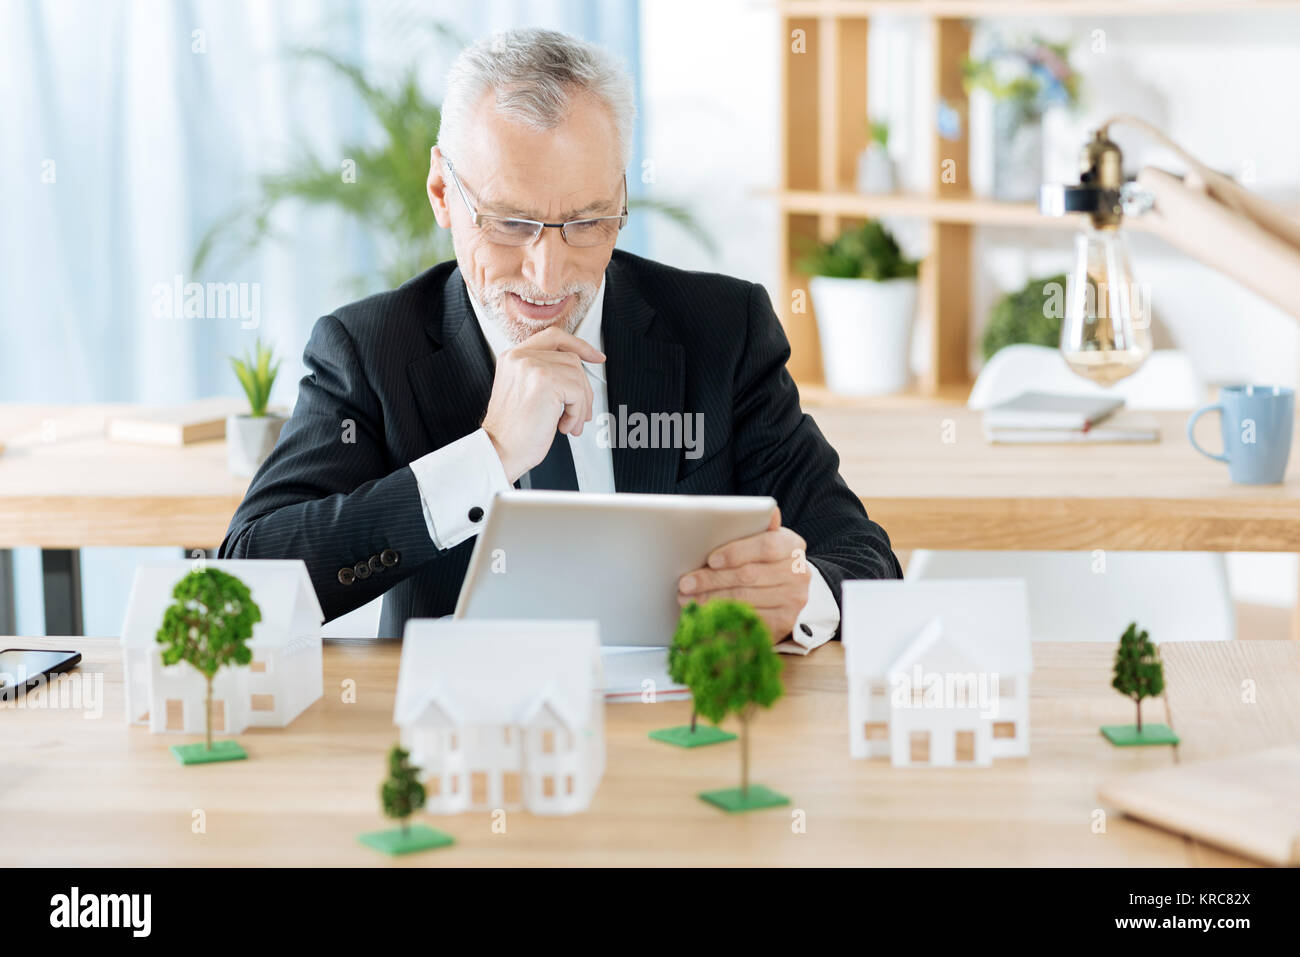 Cheerful real estate agent smiling while looking at the tablet - Stock Image